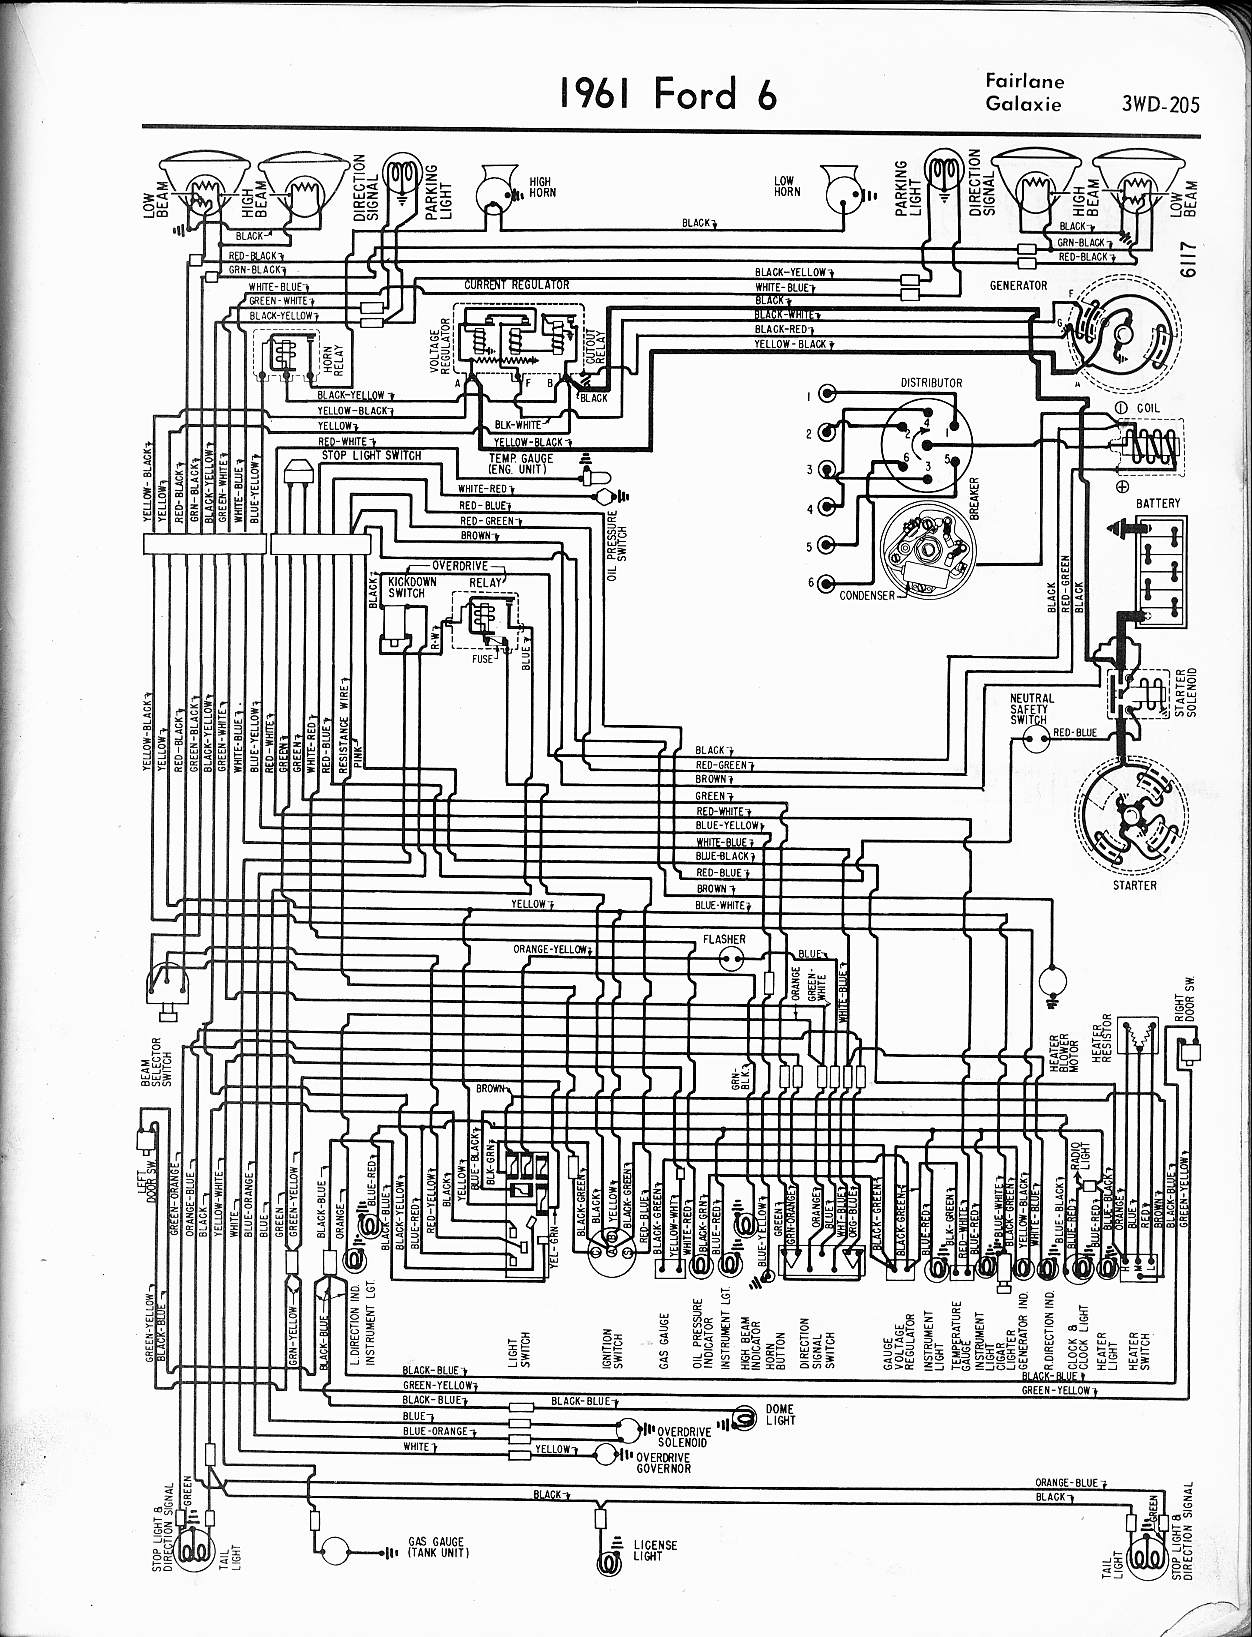 1968 Ford F100 Ignition Switch Wiring Diagram 1970 F 250 1965 100 Wire Data Schema U2022 Rh Kiymik Co 1976 Alternator